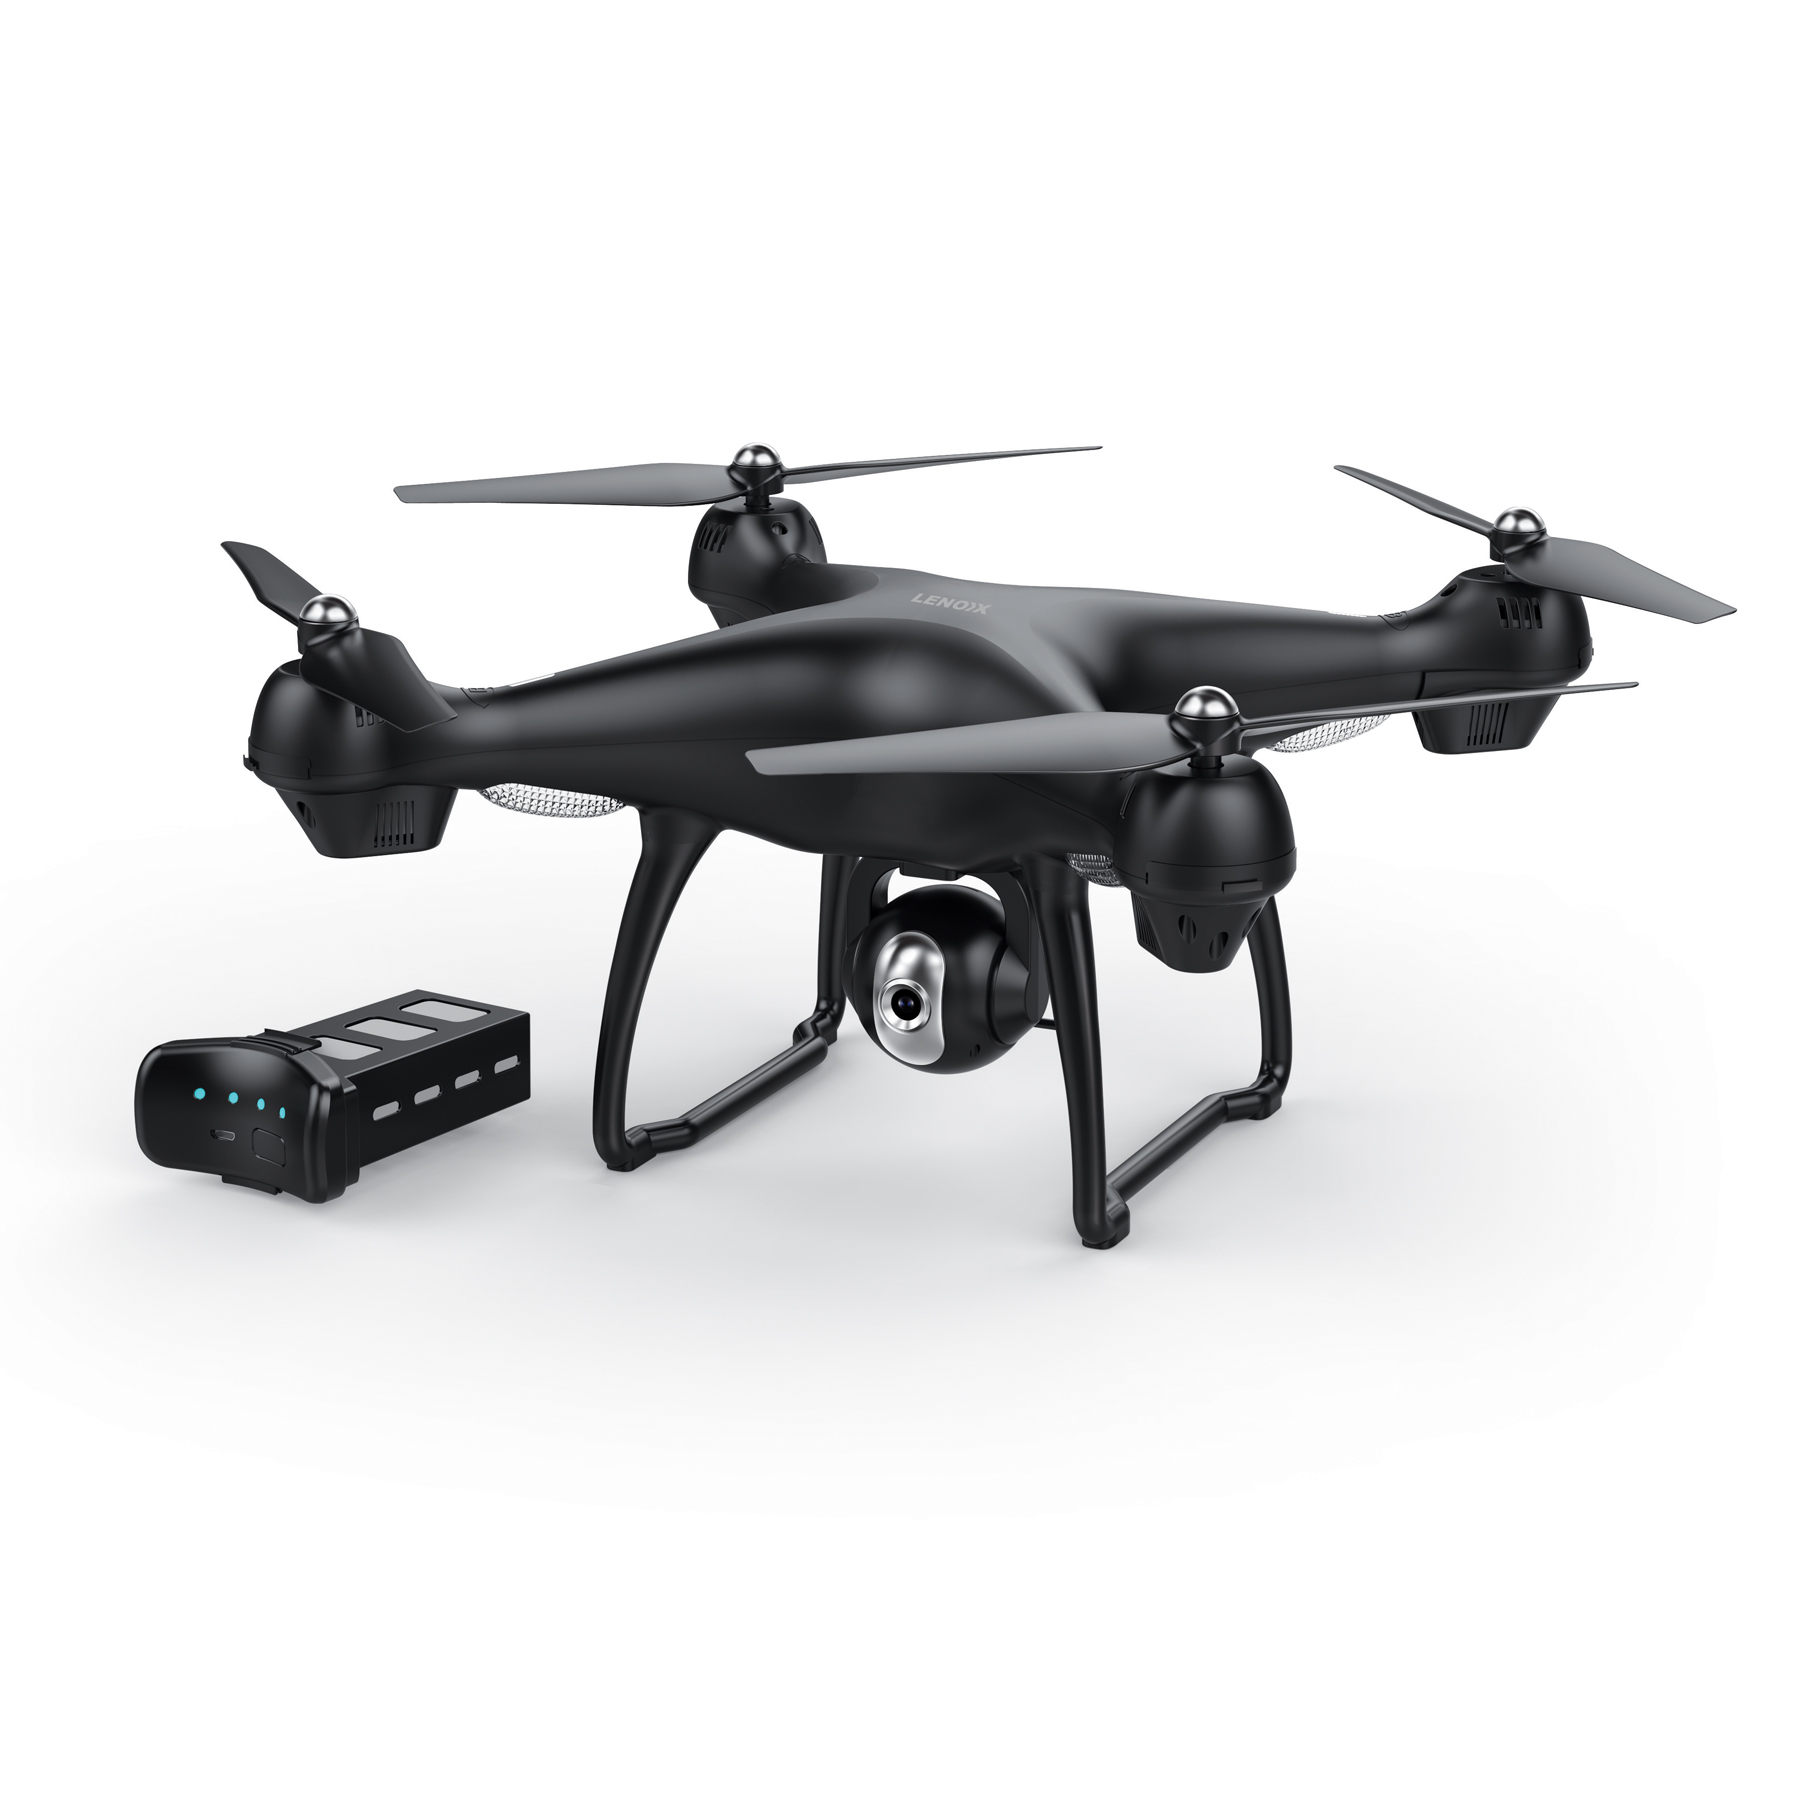 LENOXX FD1500 FOLLOW ME FLYING DRONE